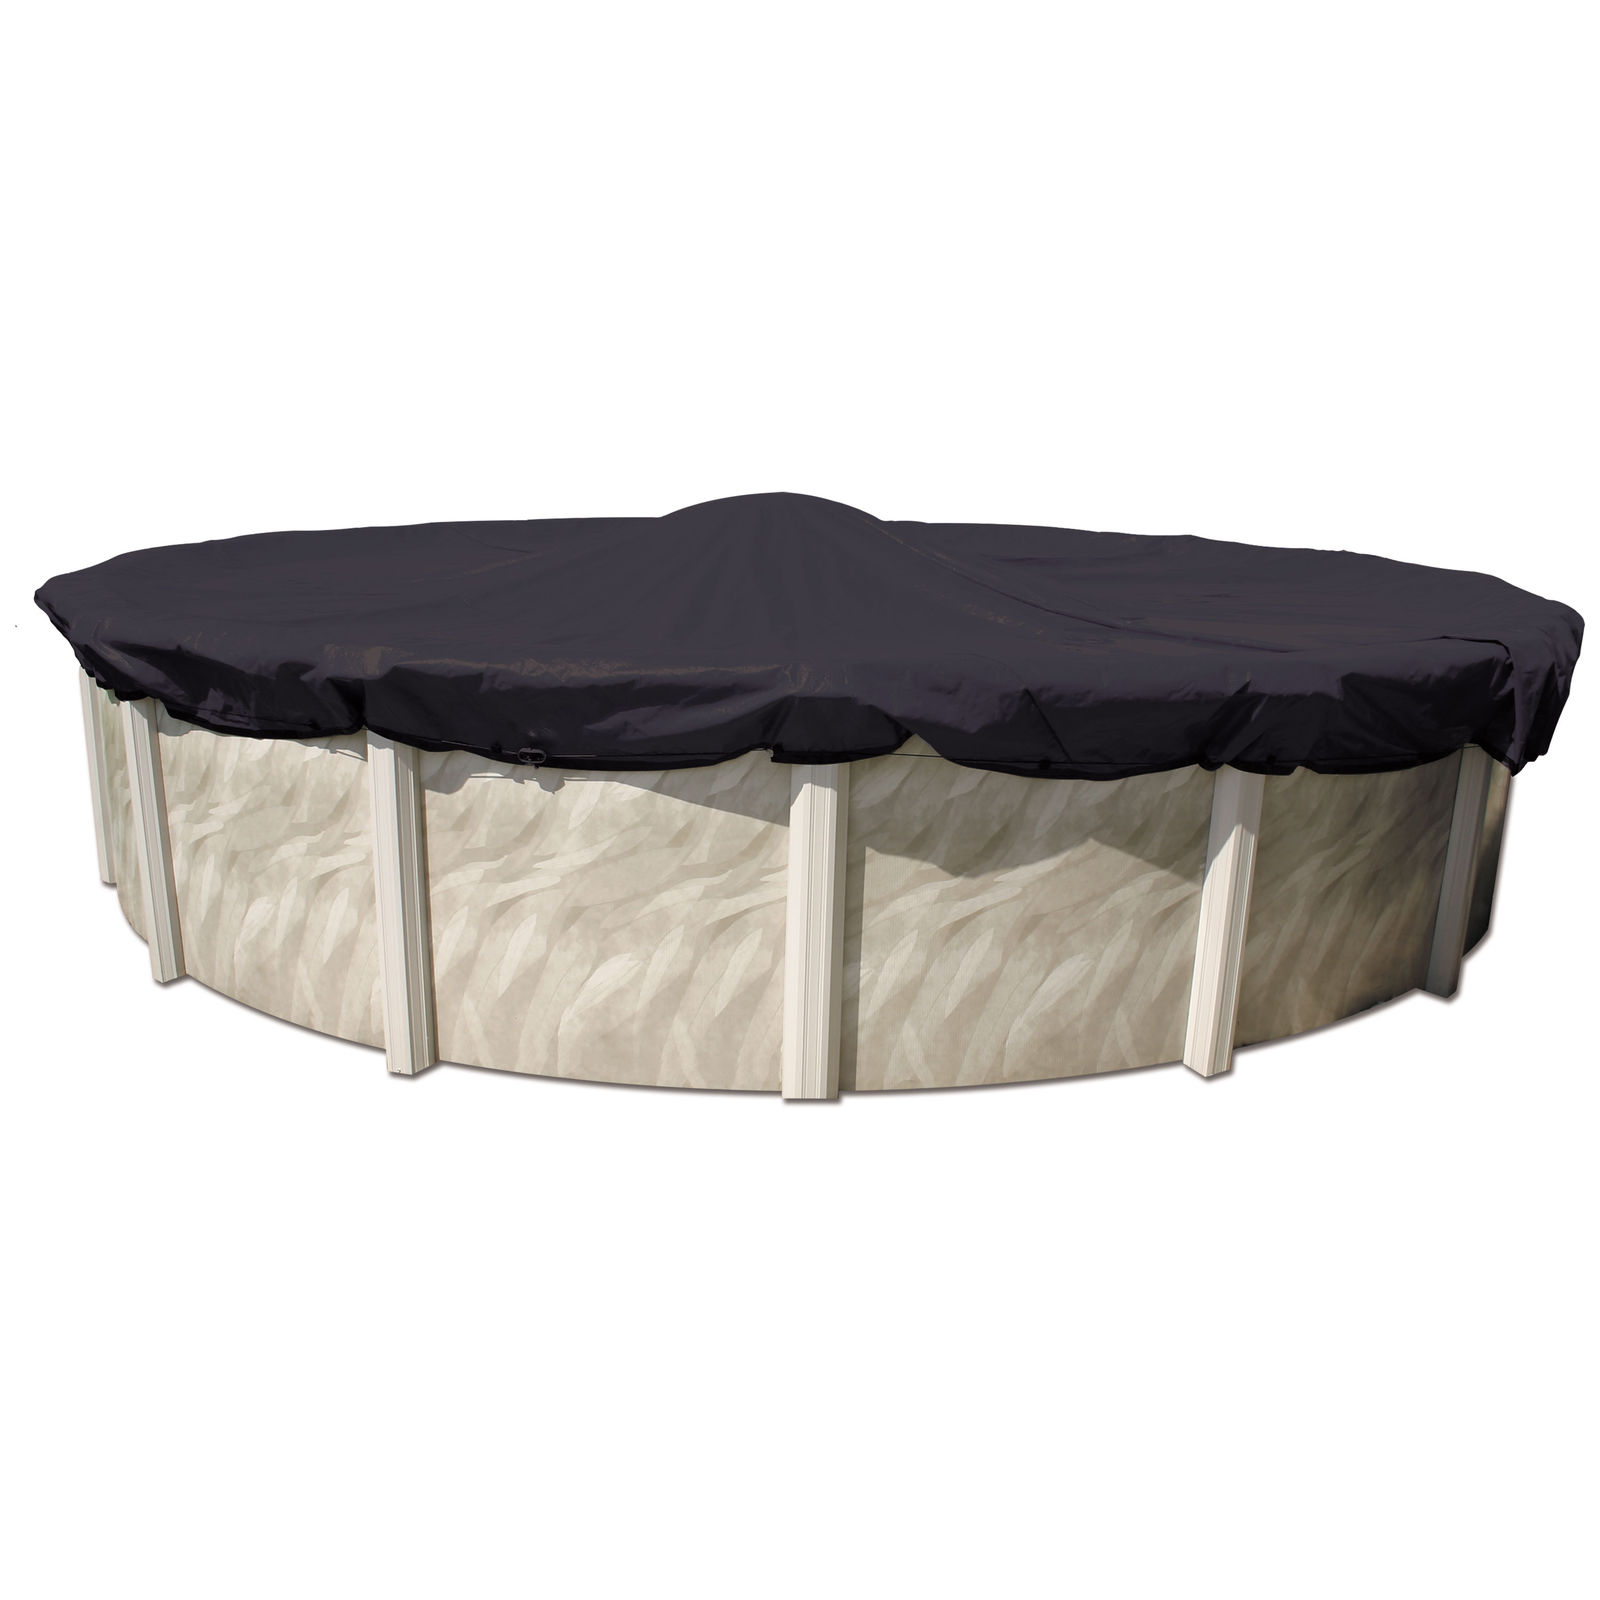 30 Ft Round Above Ground Pool Winter Cover W 8 Year